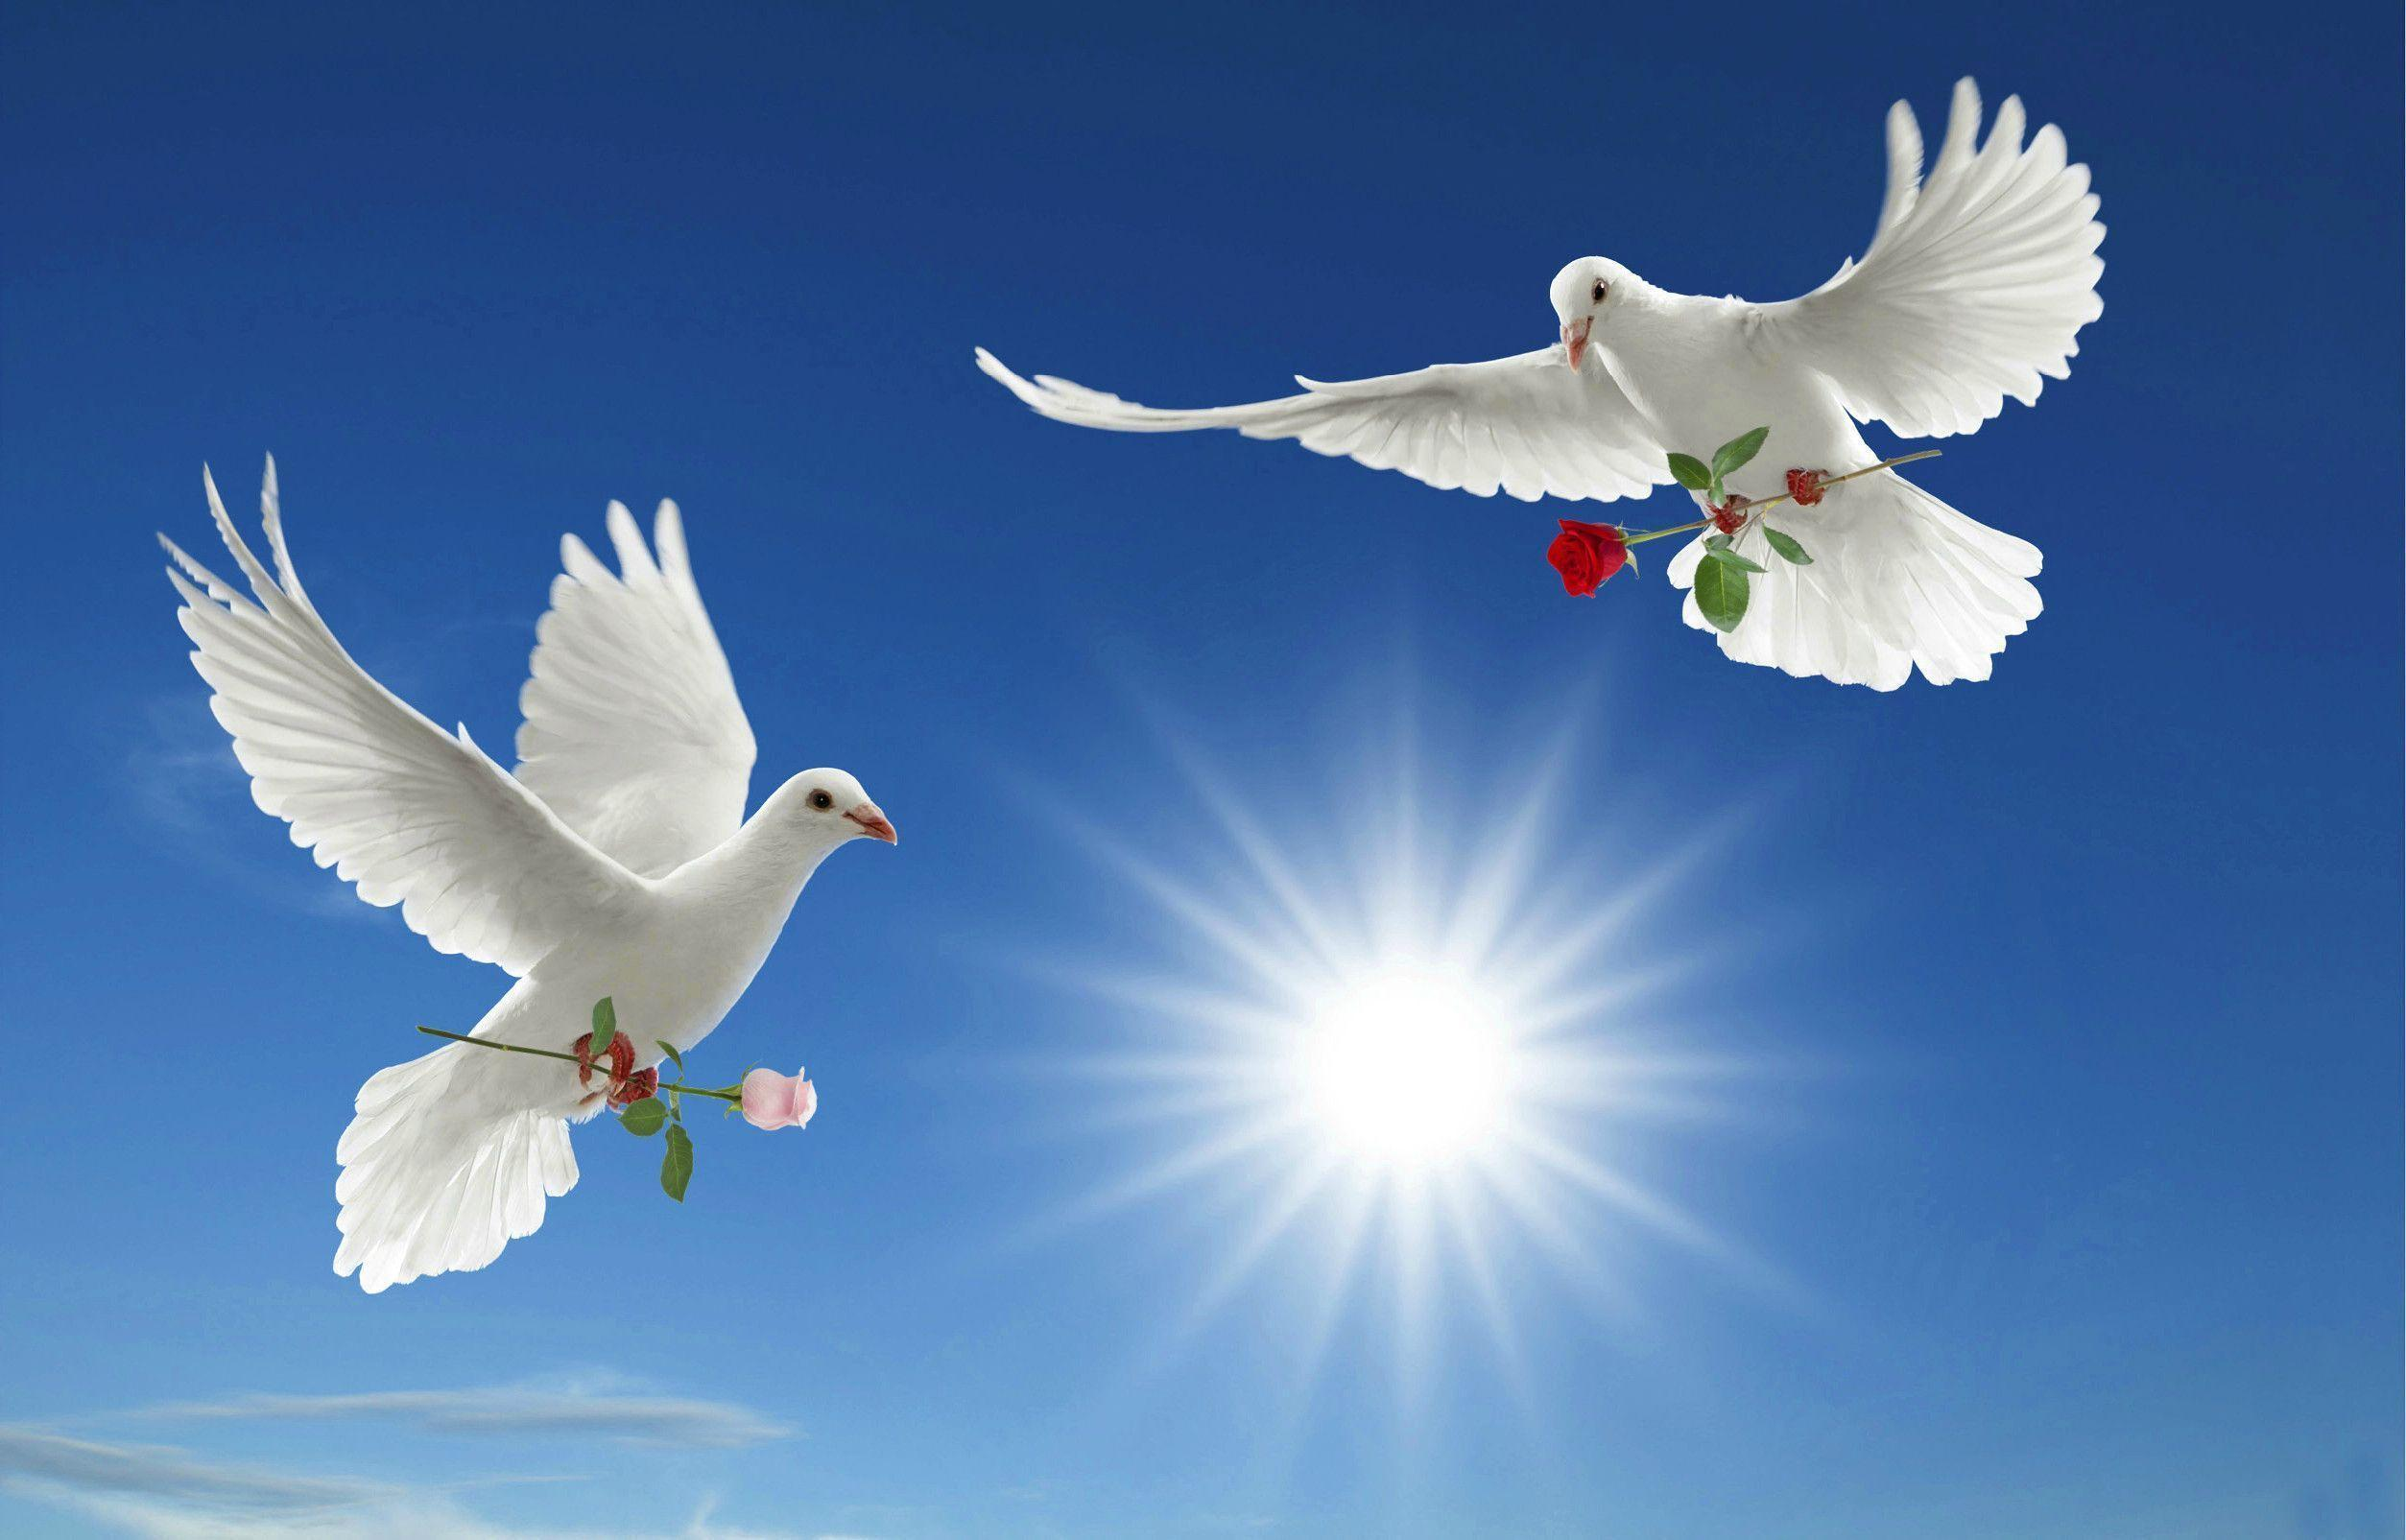 World Peace Wallpapers 2507x1605